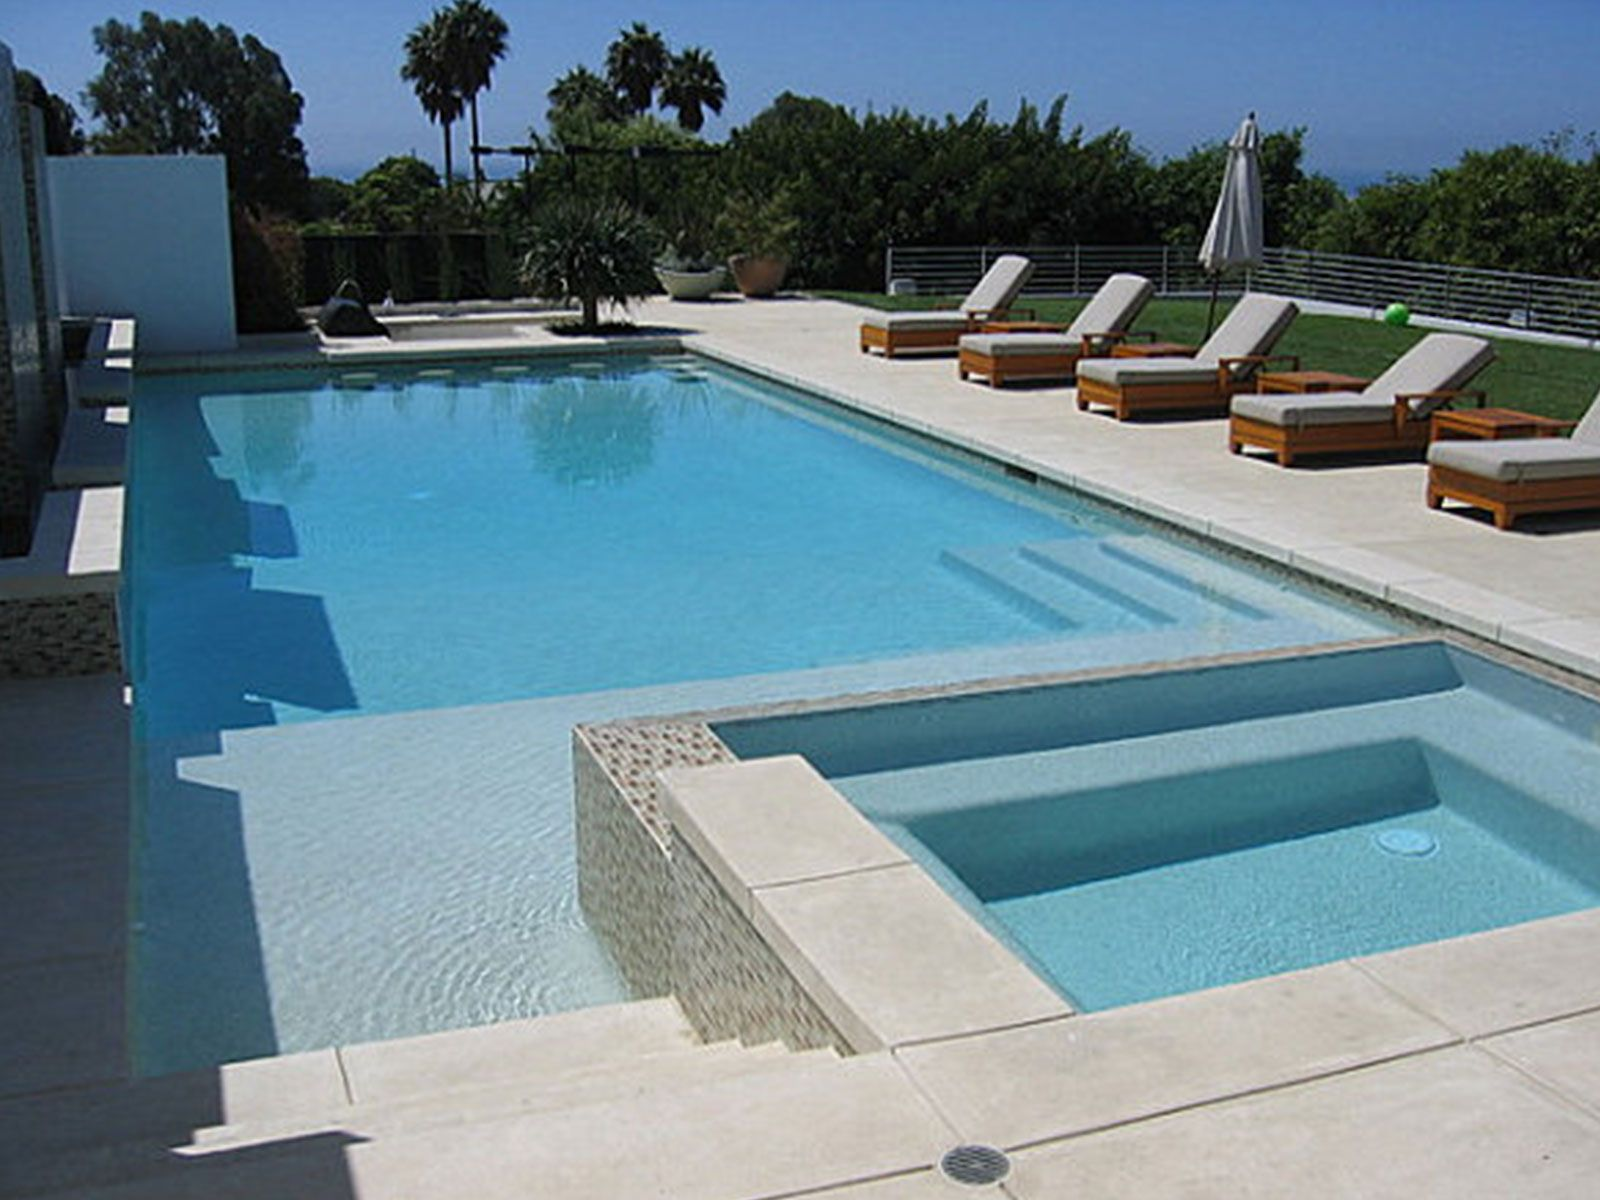 Simple swimming pool design image modern creative swimming for Unique swimming pool designs